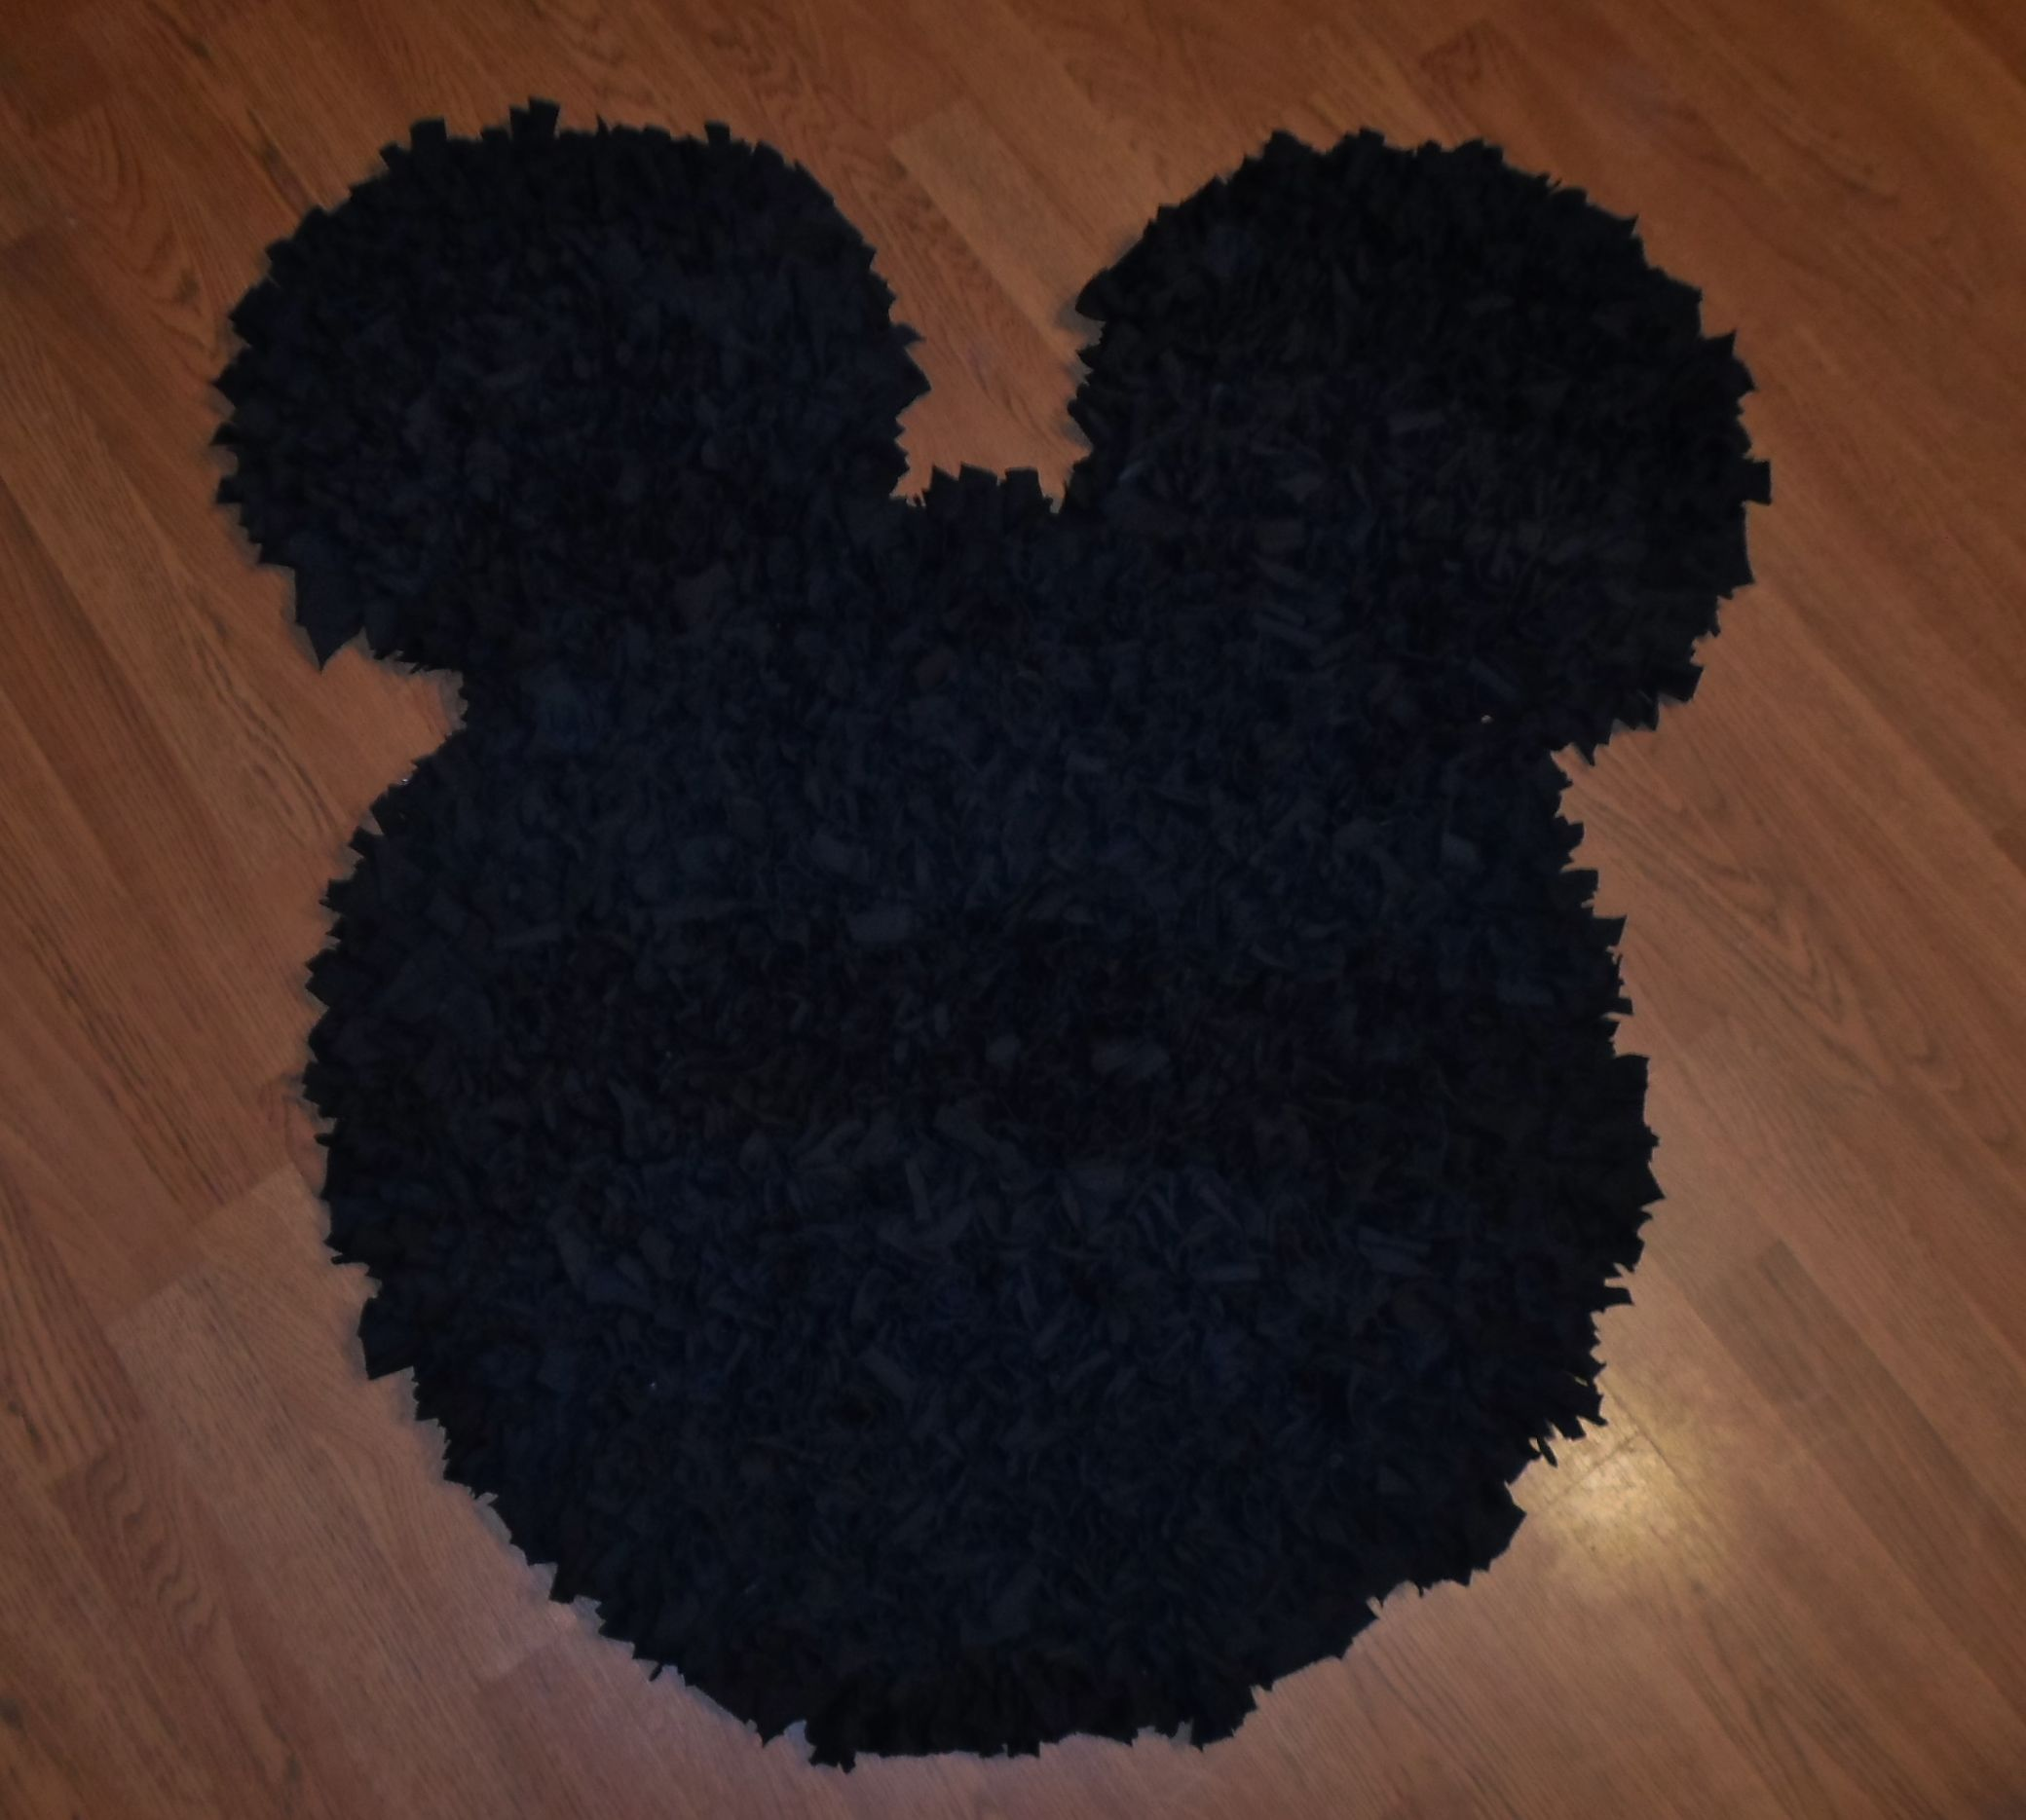 hand crafted decorative mickey mouse rug black t-shirt upcycled shag